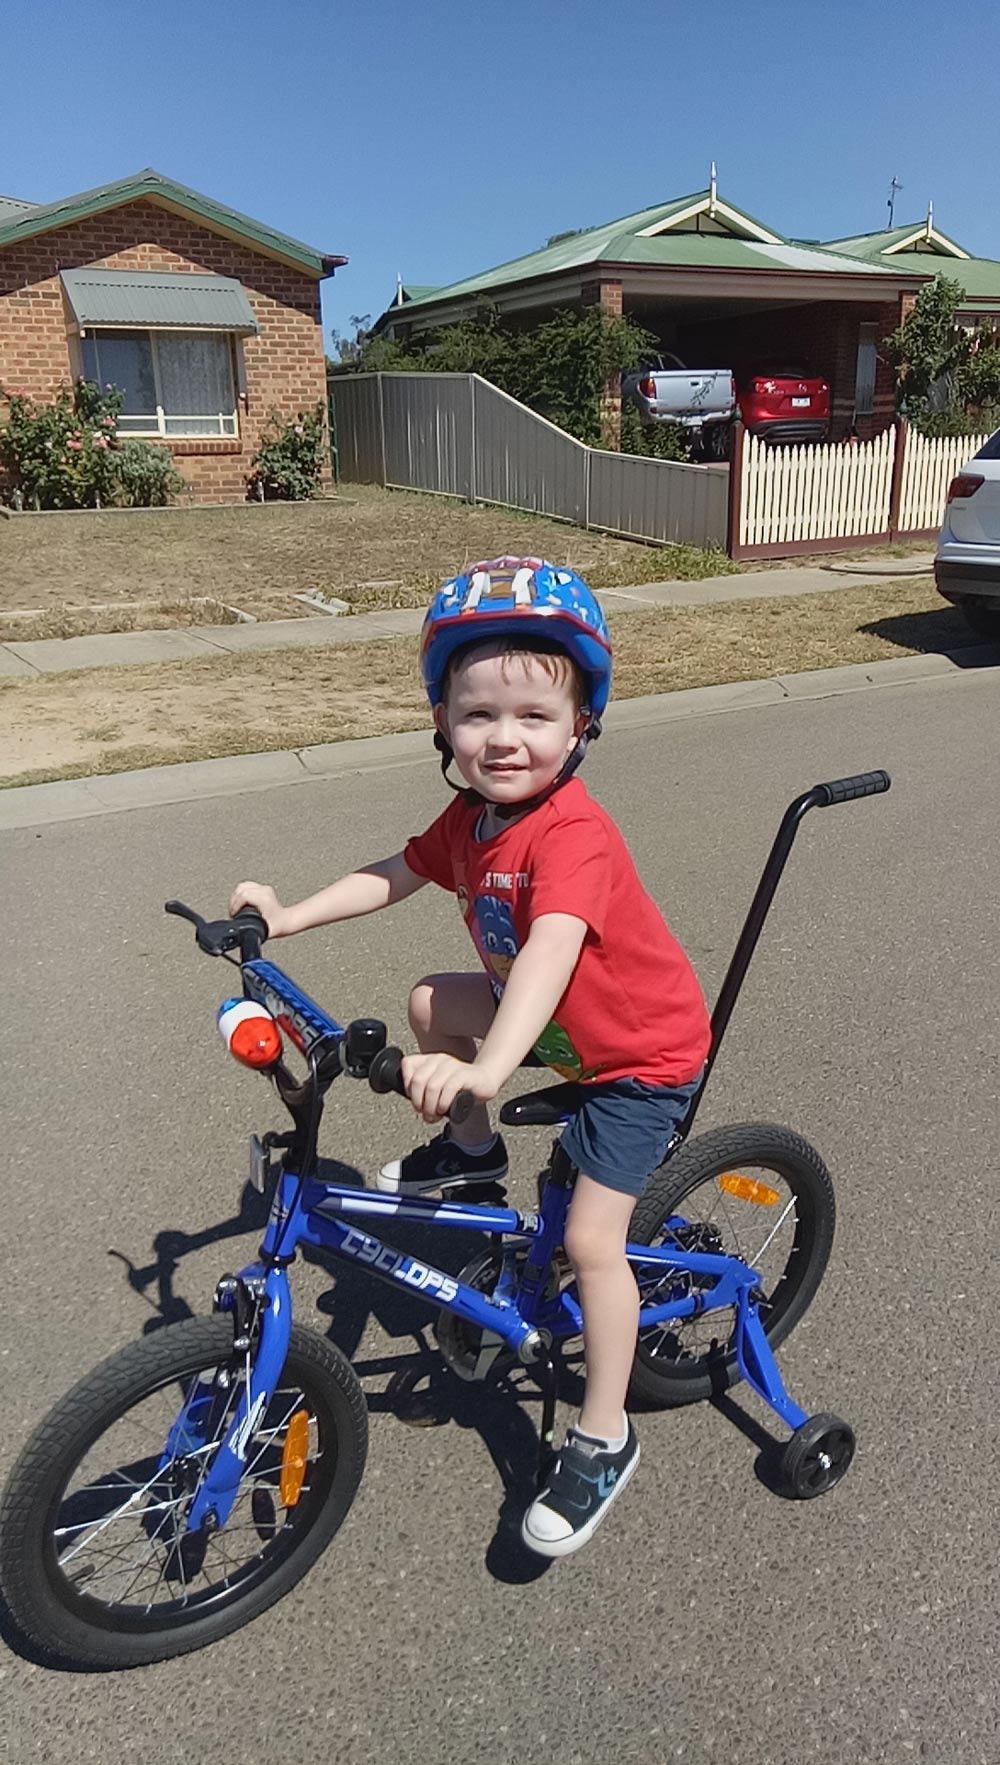 Darragh Hyde is a cystic fibrosis sufferer. He and his family have been granted extra time in Australia while their case is considered by the minister.